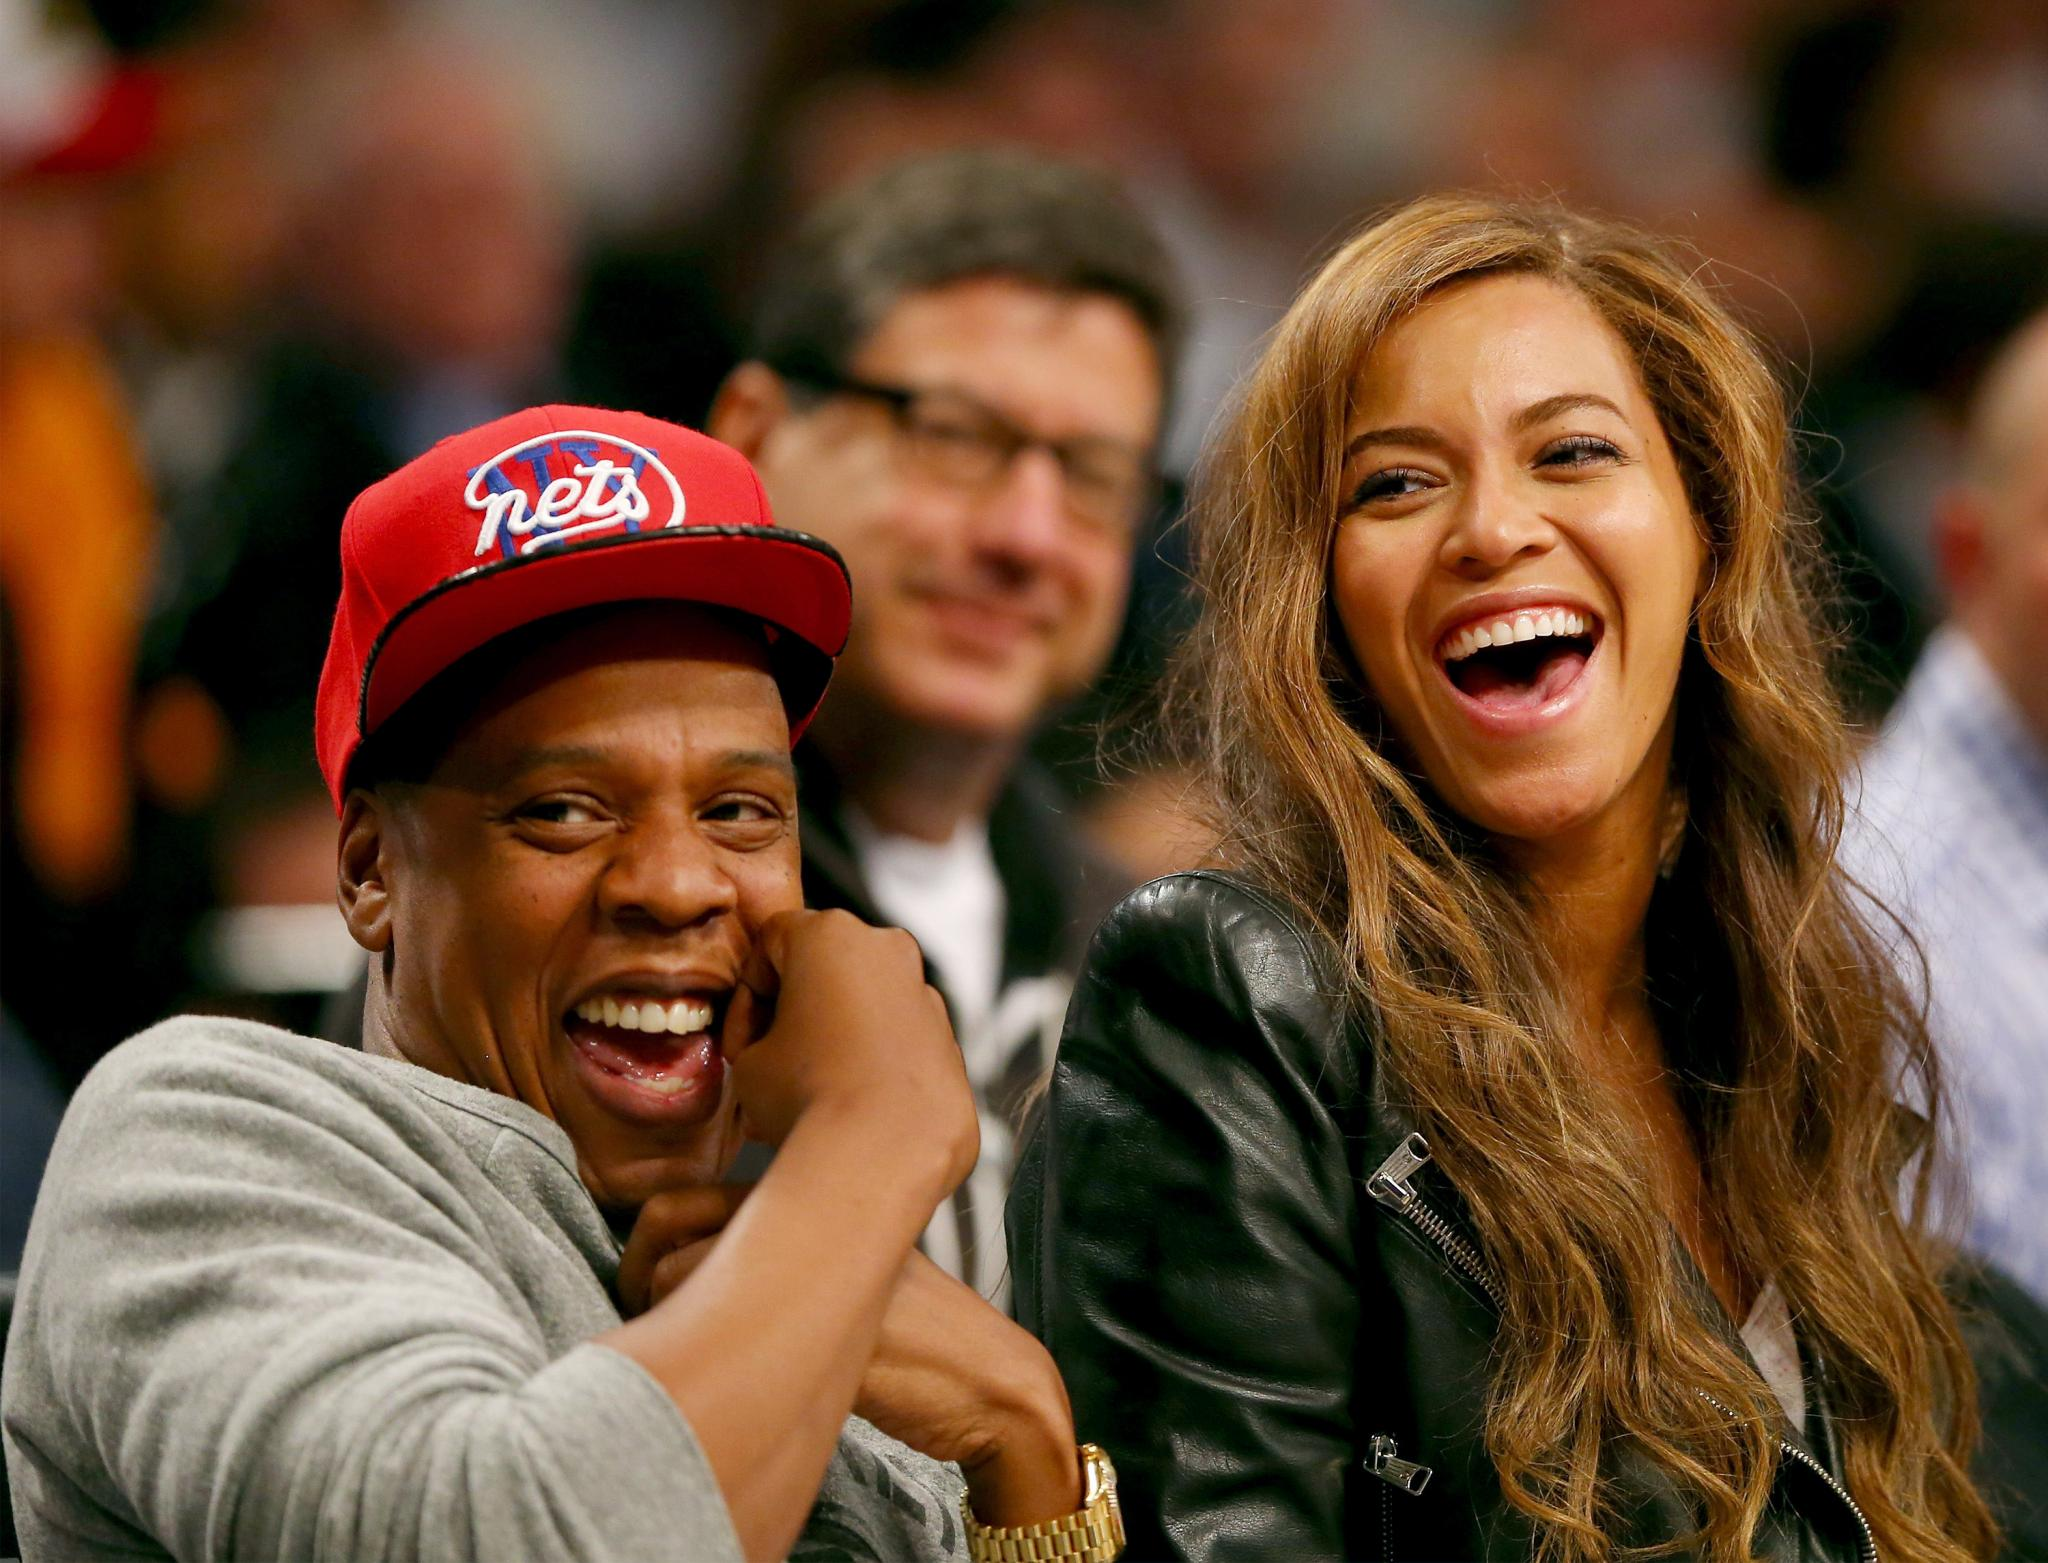 Beyoncé and JAY-Z Name Twins Rumi and Sir: Report